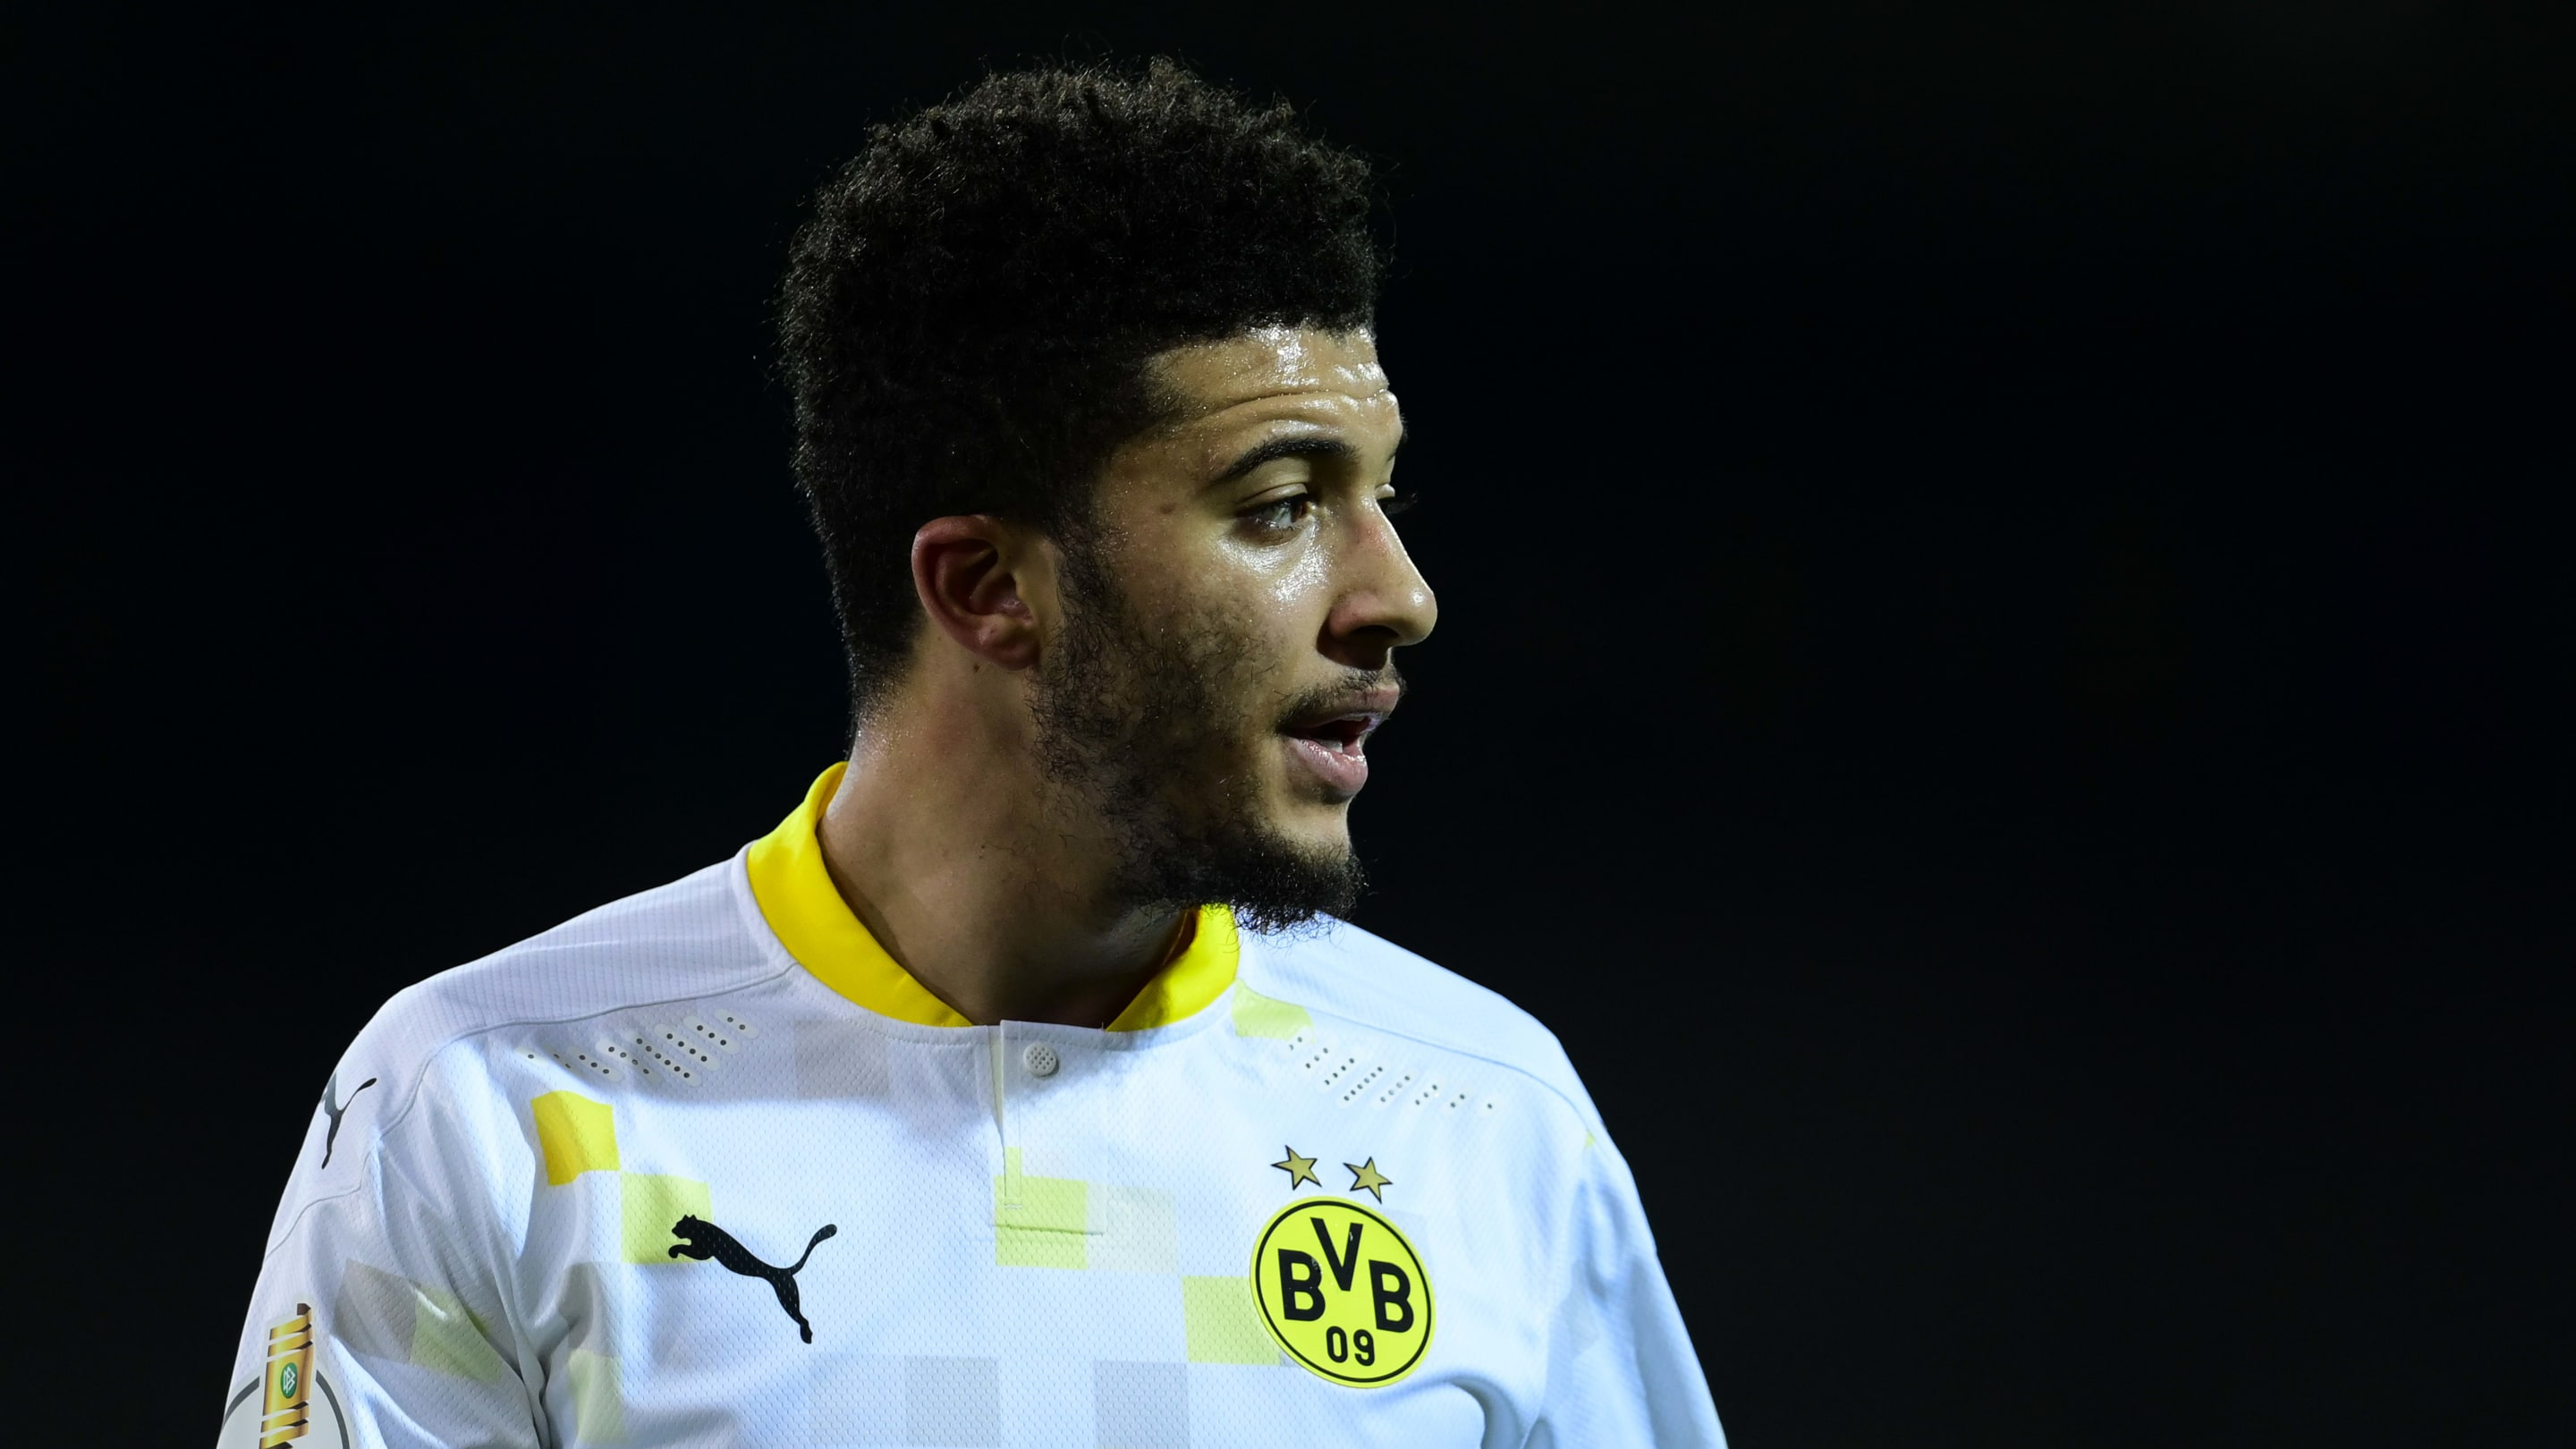 Borussia Dortmund CEO claims Man Utd offer for Jadon Sancho 'never existed'